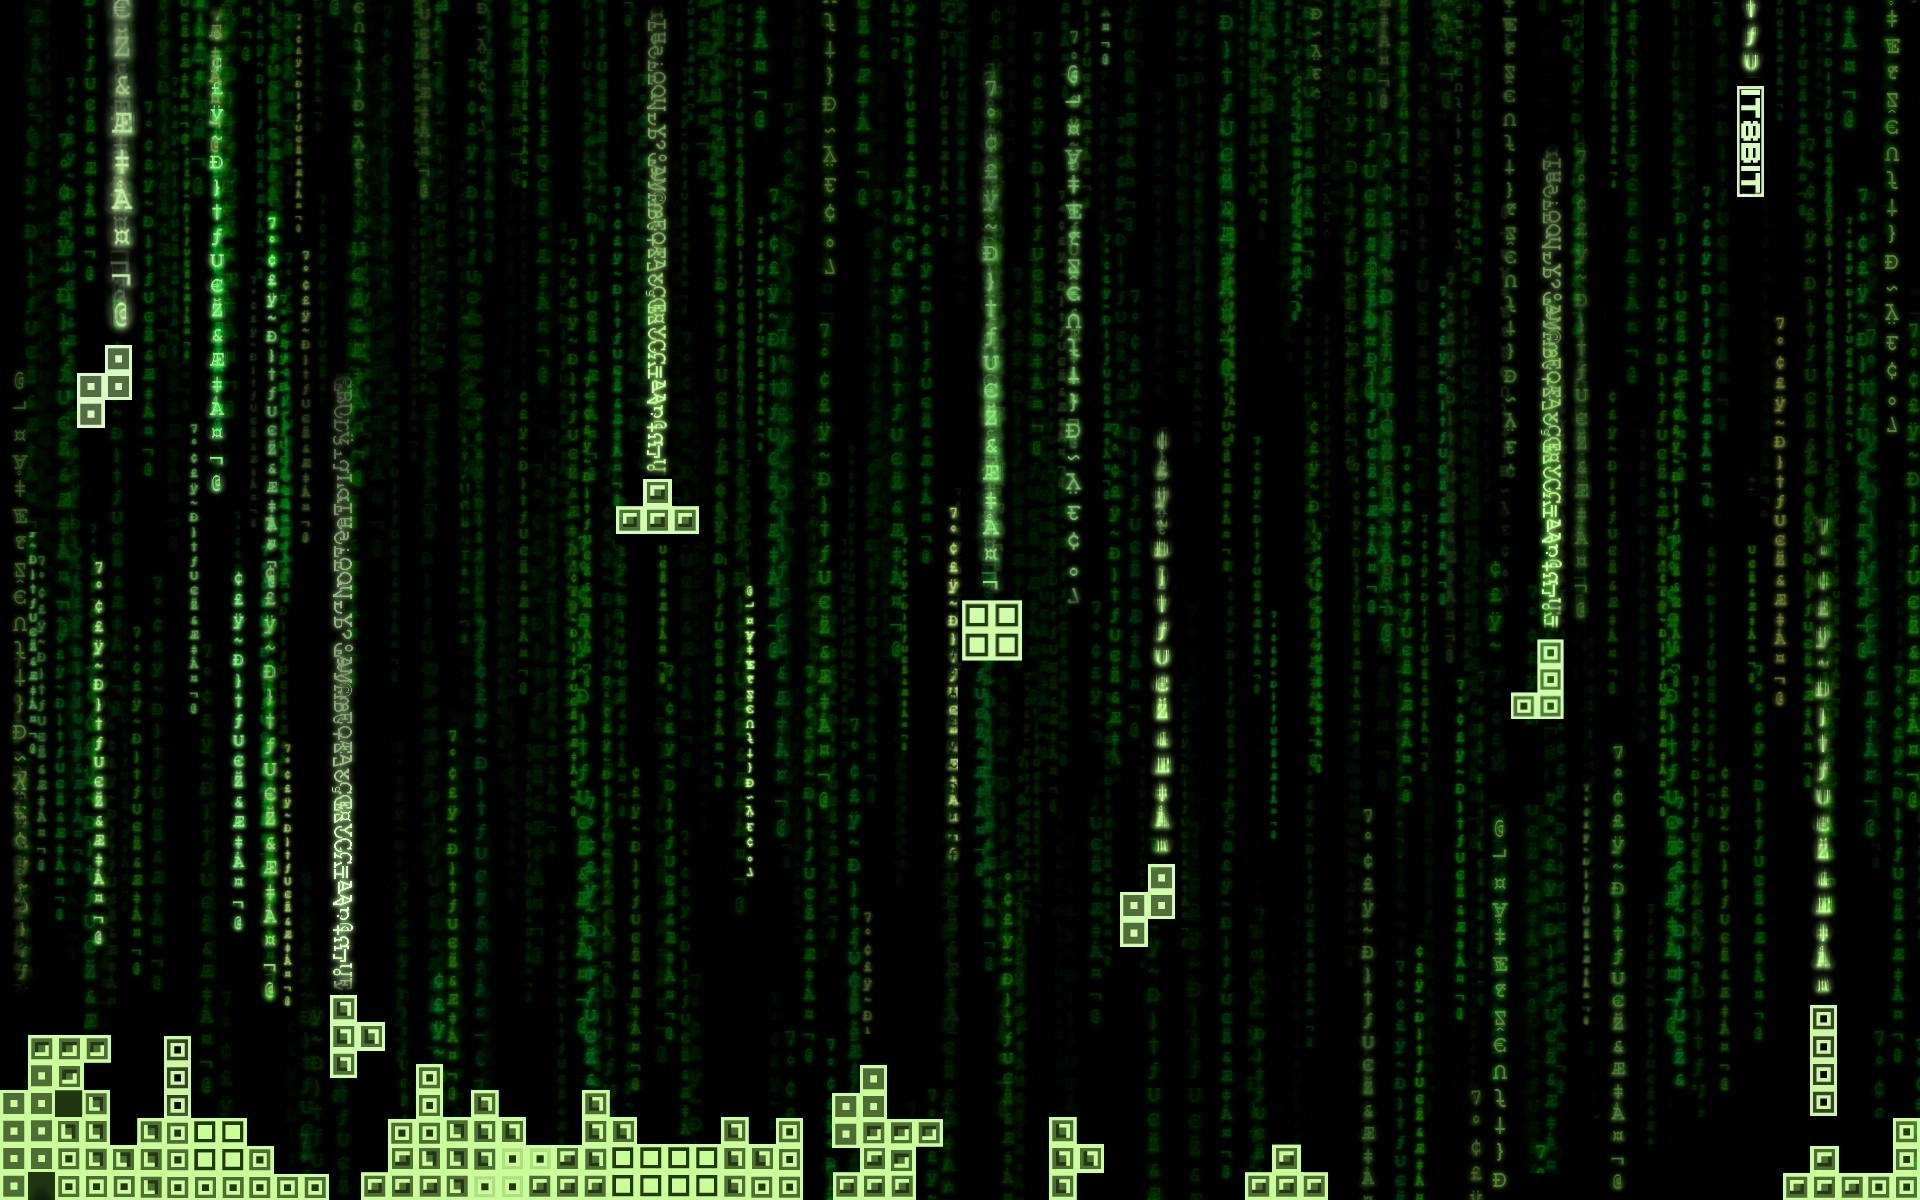 matrix code wallpaper hd (65+ images)